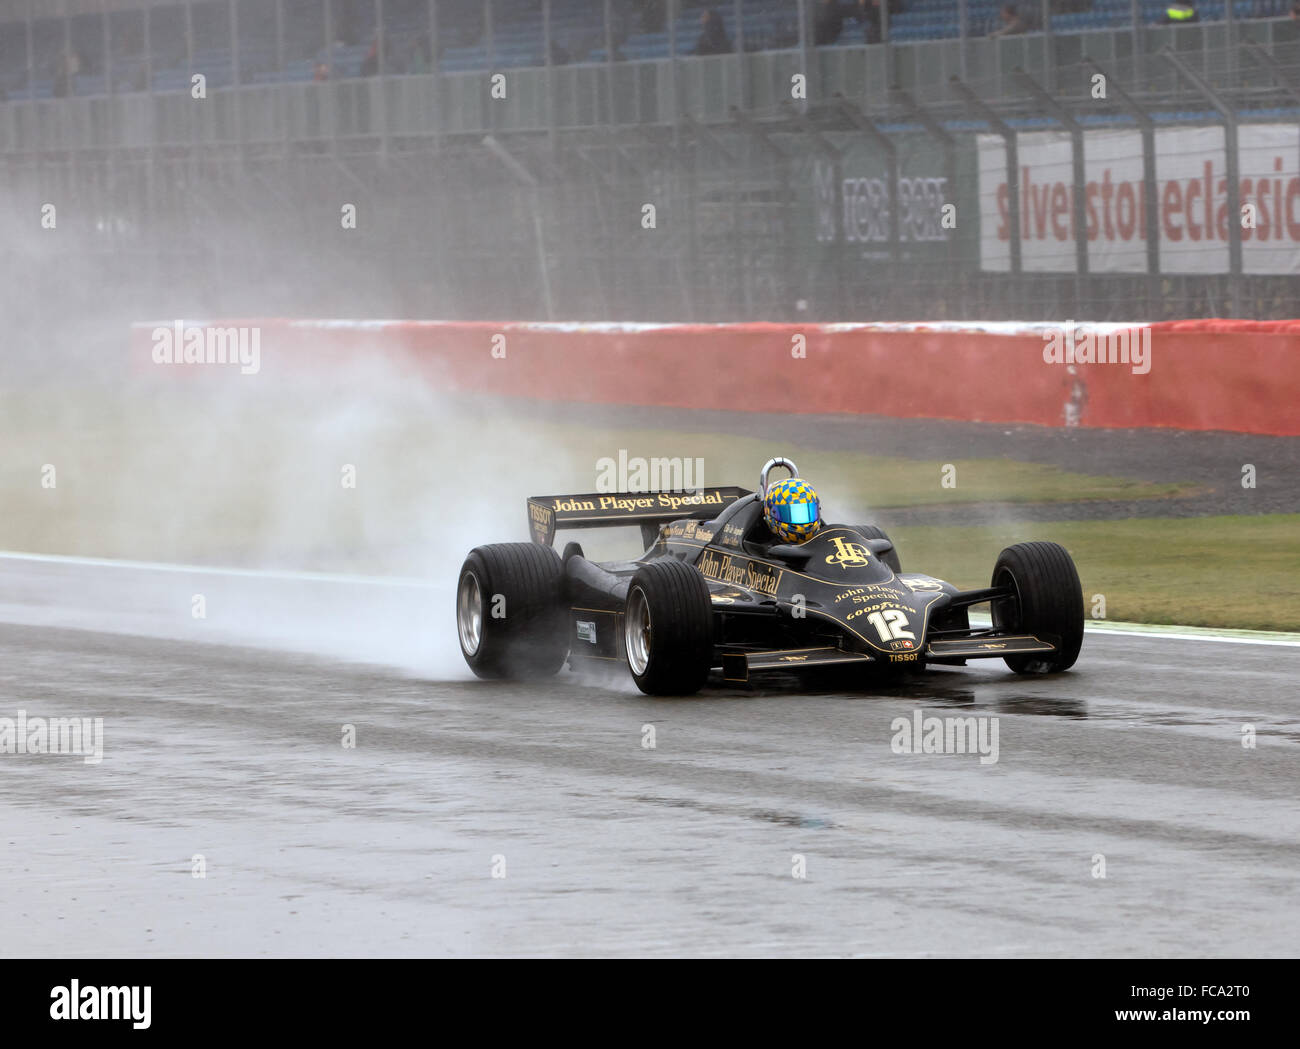 A 1981, Lotus 91 Formula 1 car, Qualifying in the rain, for the FIA Historic Formula One Race at the Silverstone - Stock Image